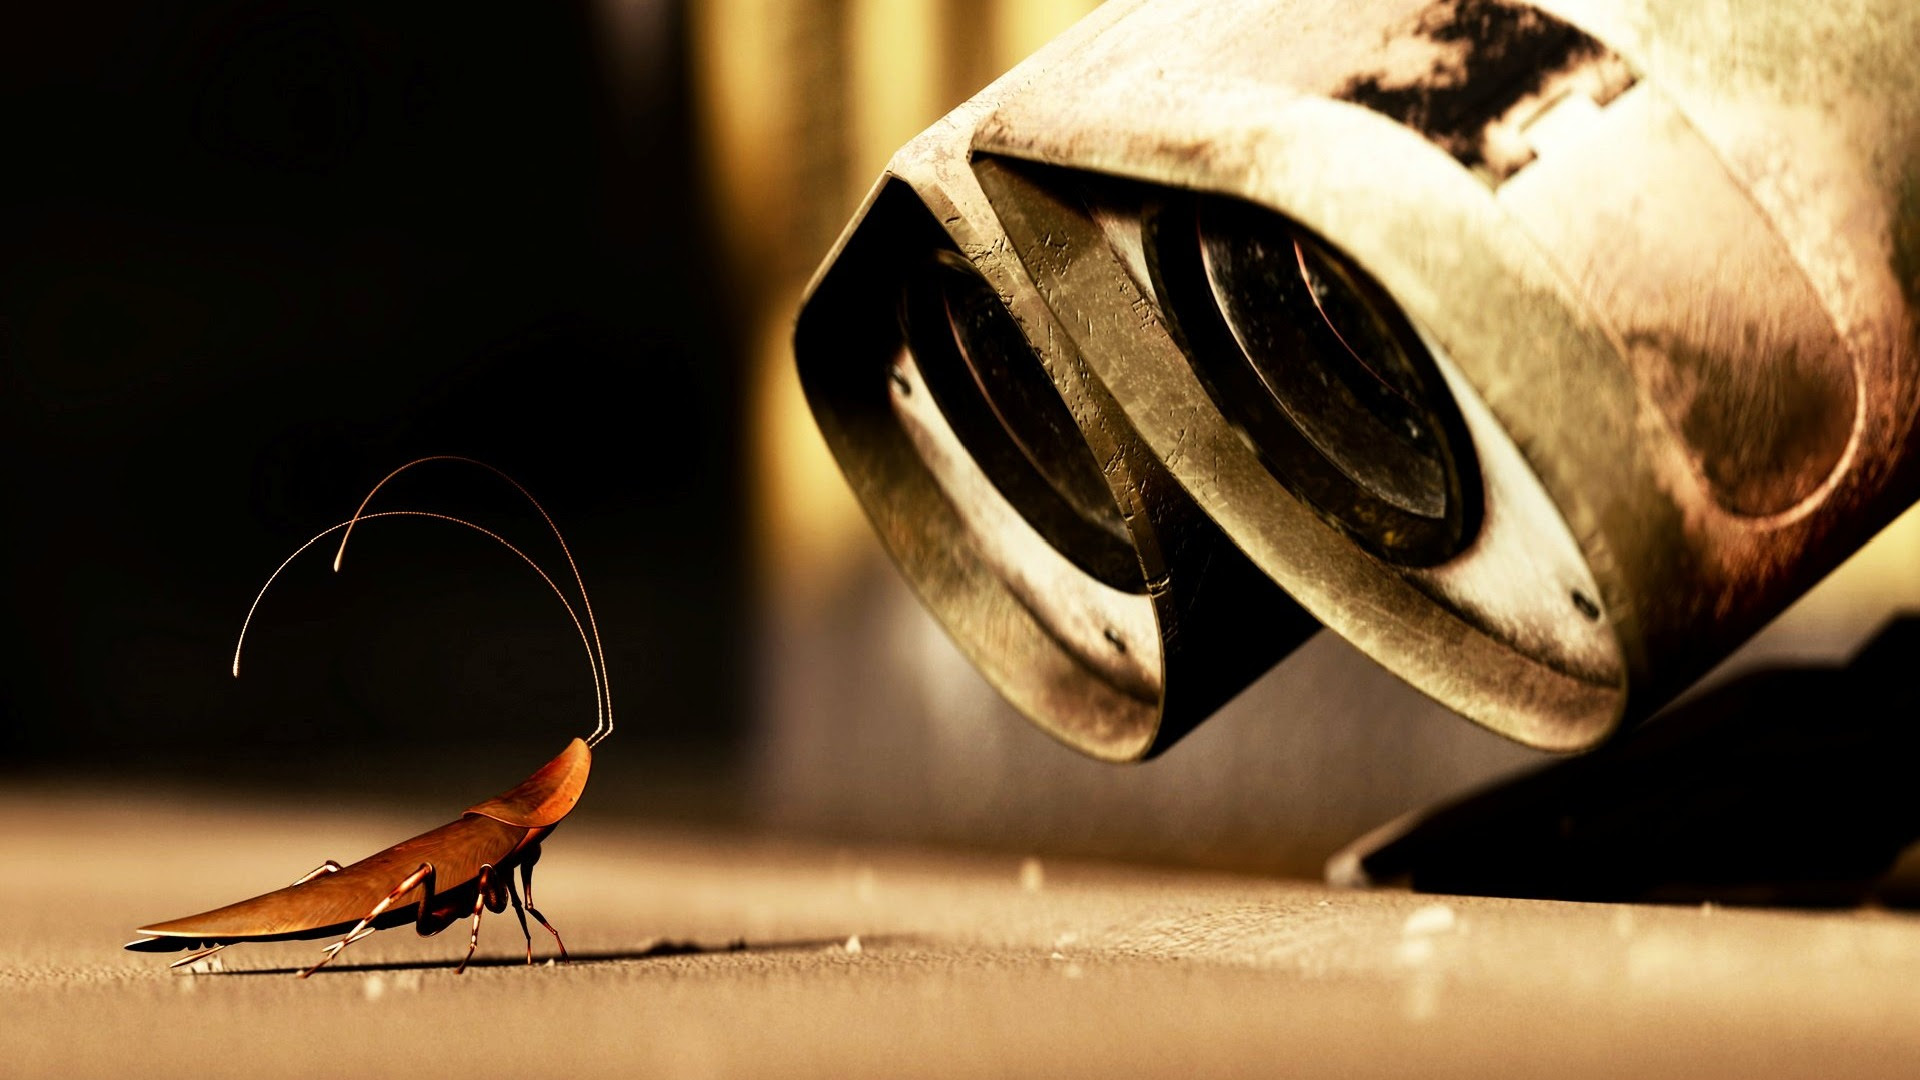 Wall E HD Wallpapers For Desktop Download